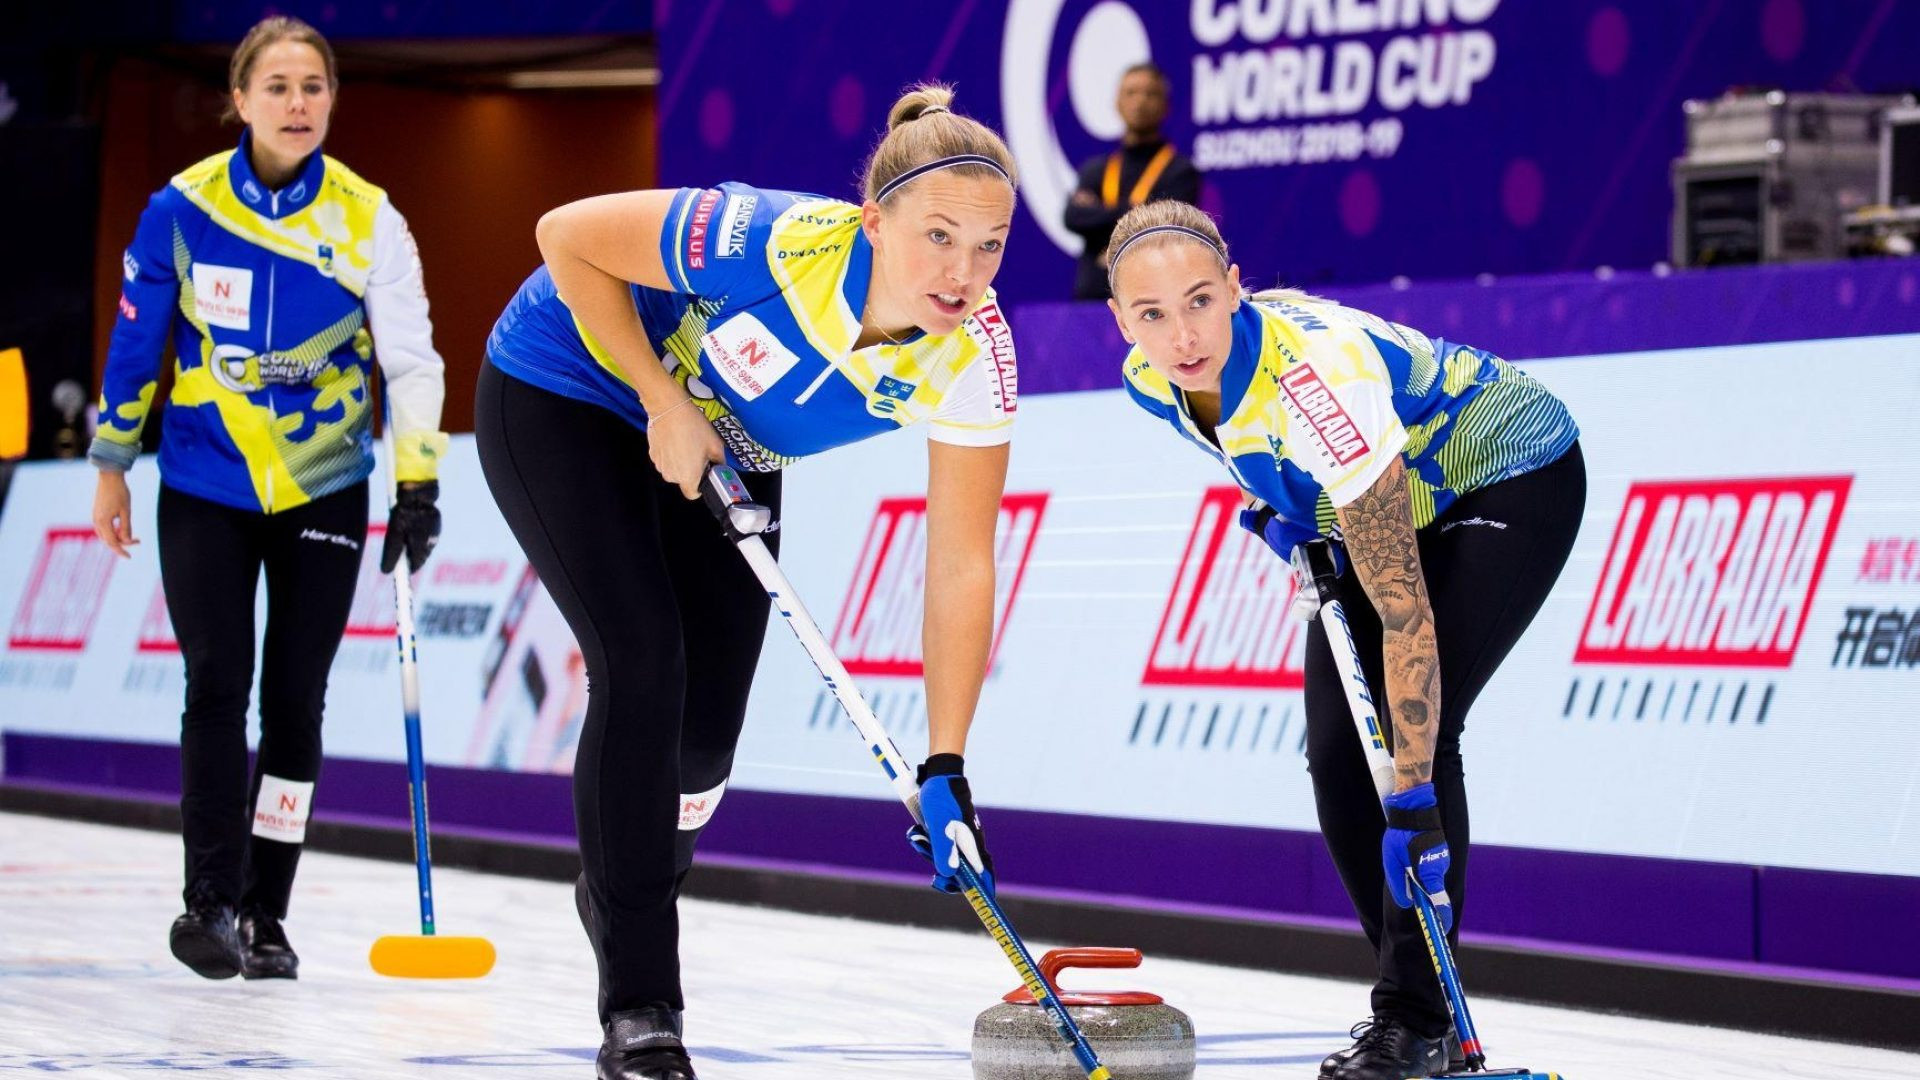 Olympic champion Hasselborg begins new Curling World Cup series with victory